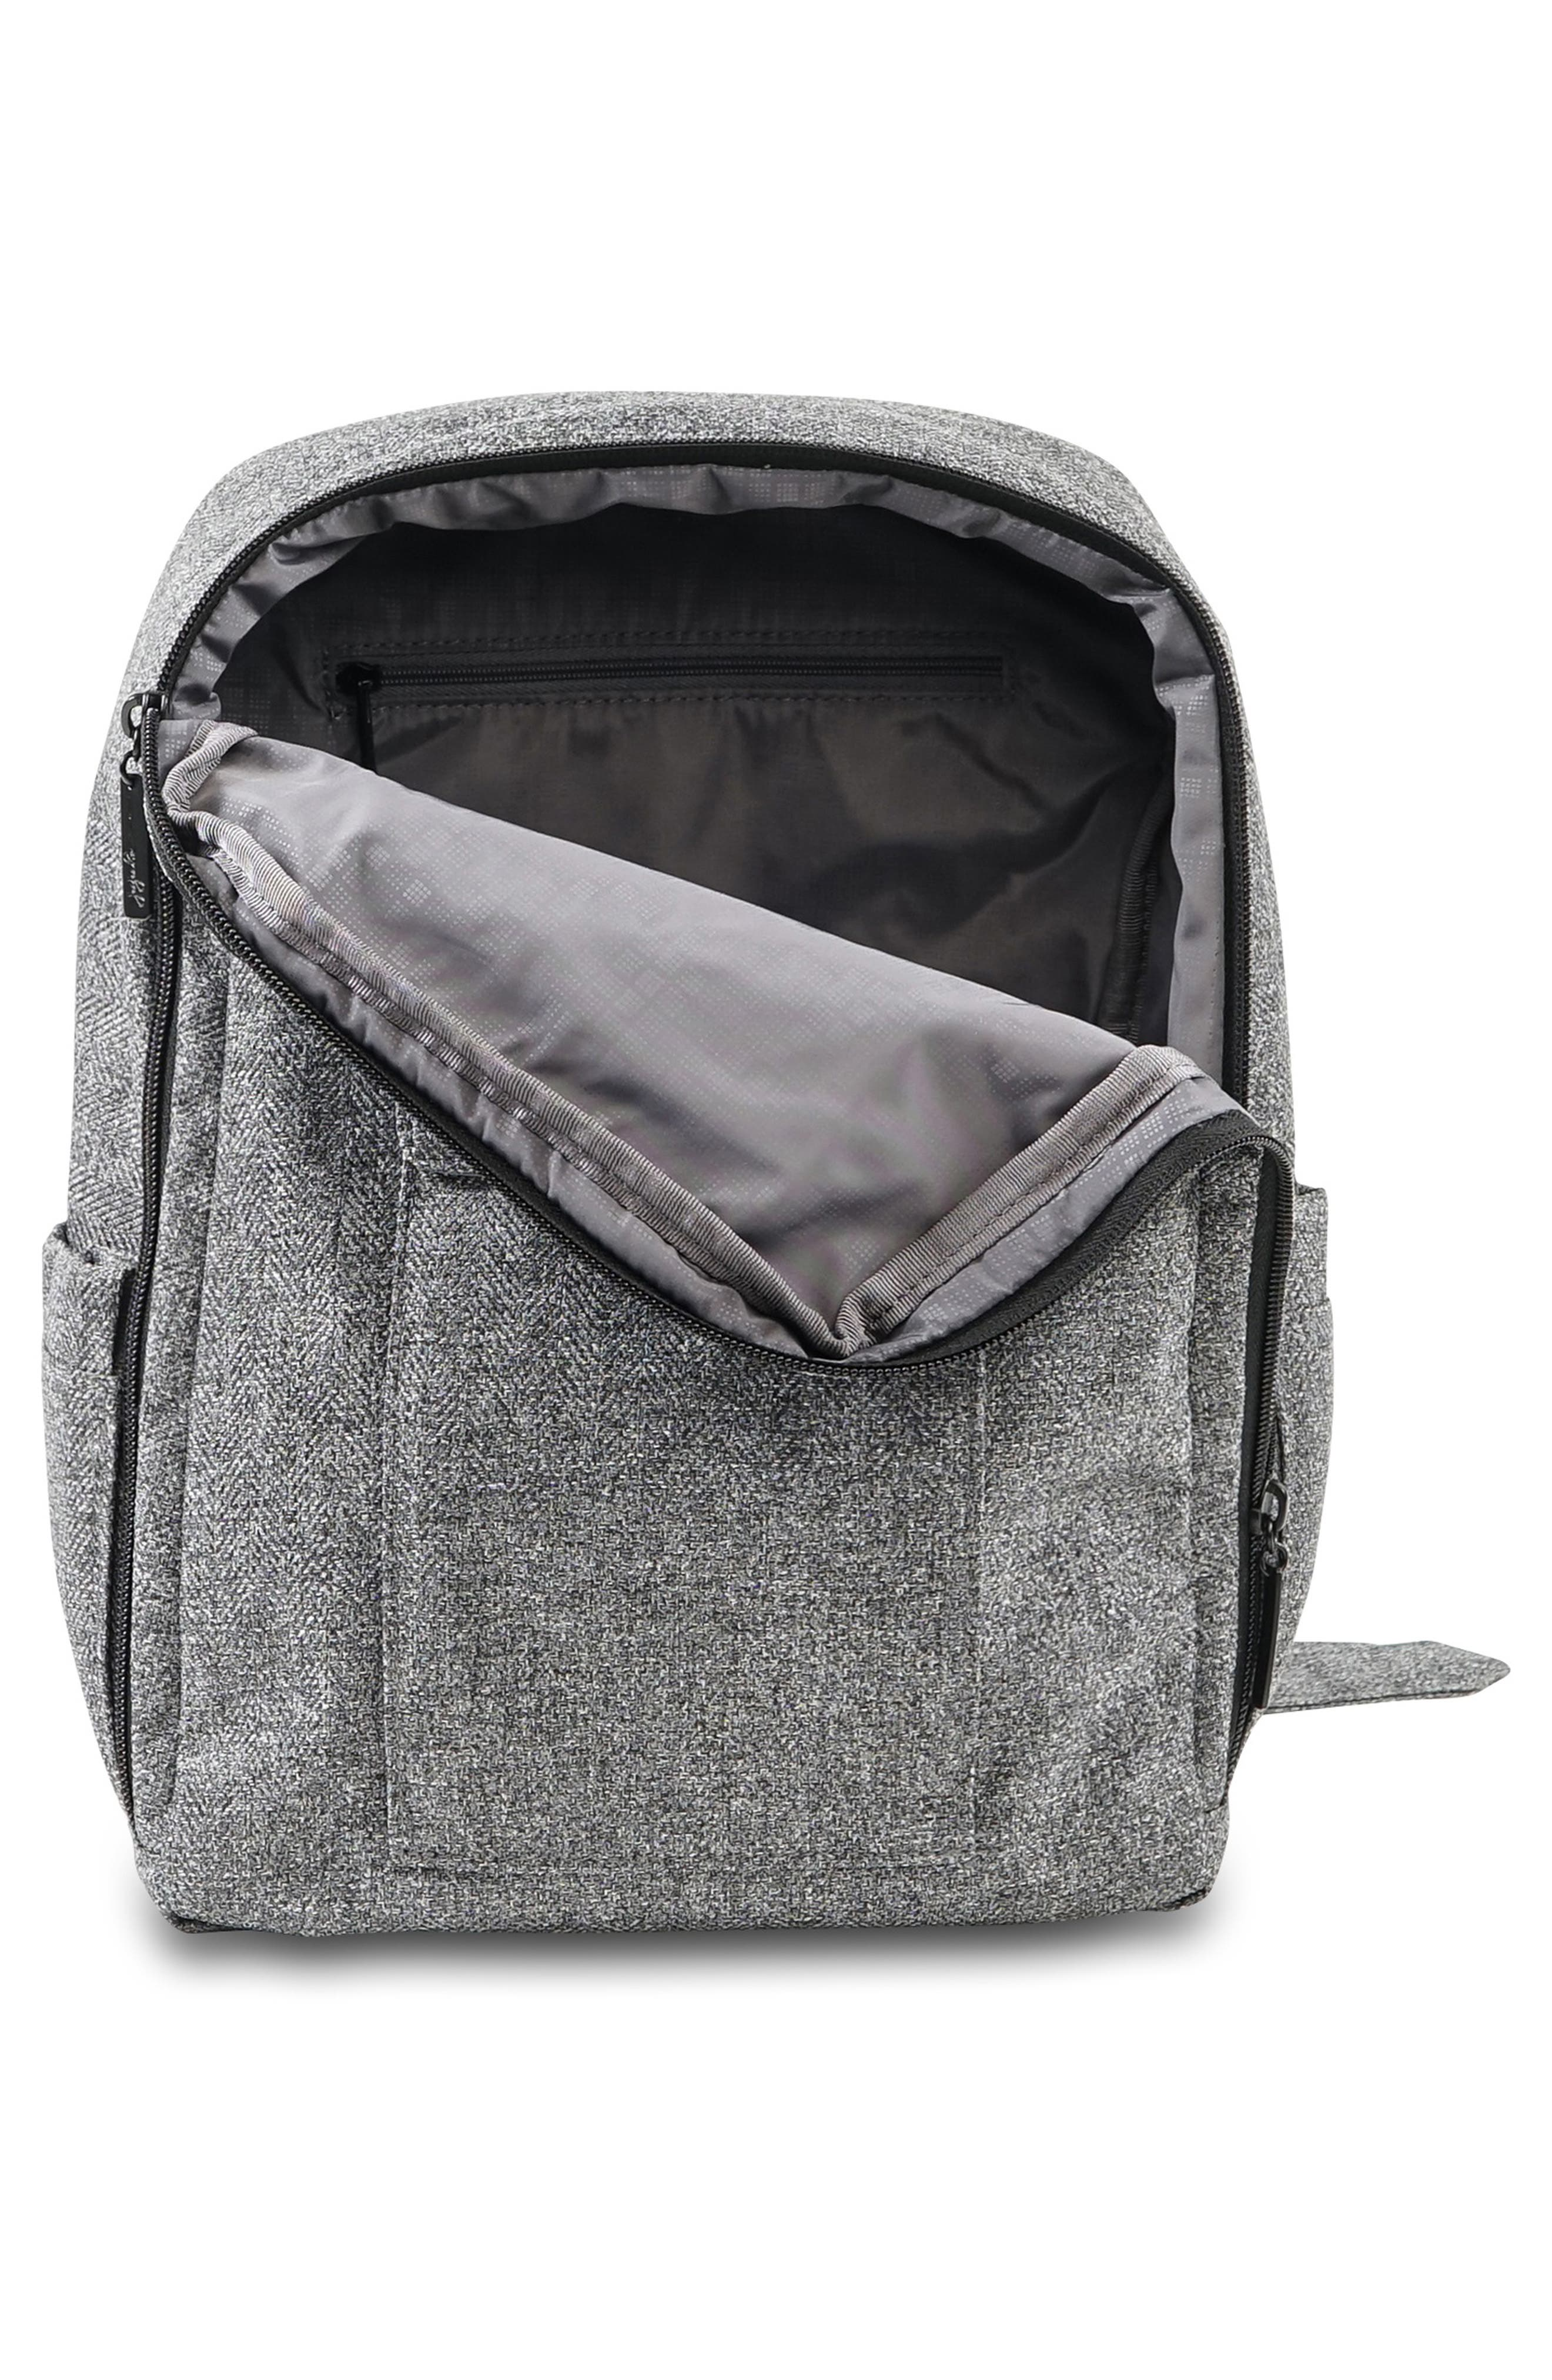 'Mini Be - Onyx Collection' Backpack,                             Alternate thumbnail 3, color,                             GRAY MATTER